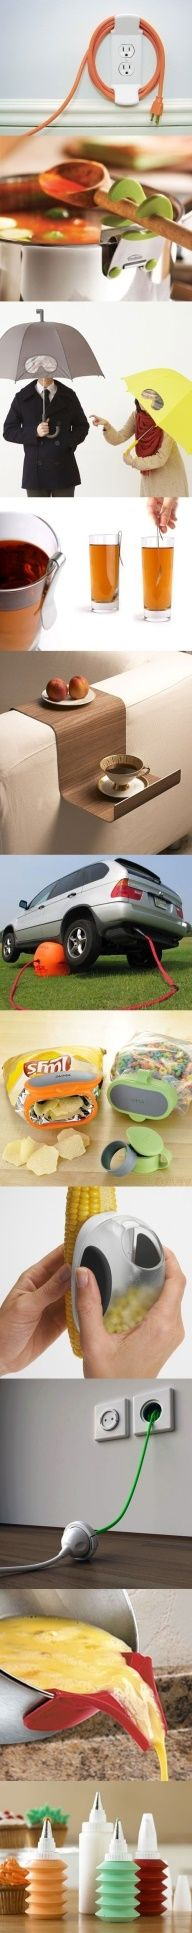 Brilliant household inventions